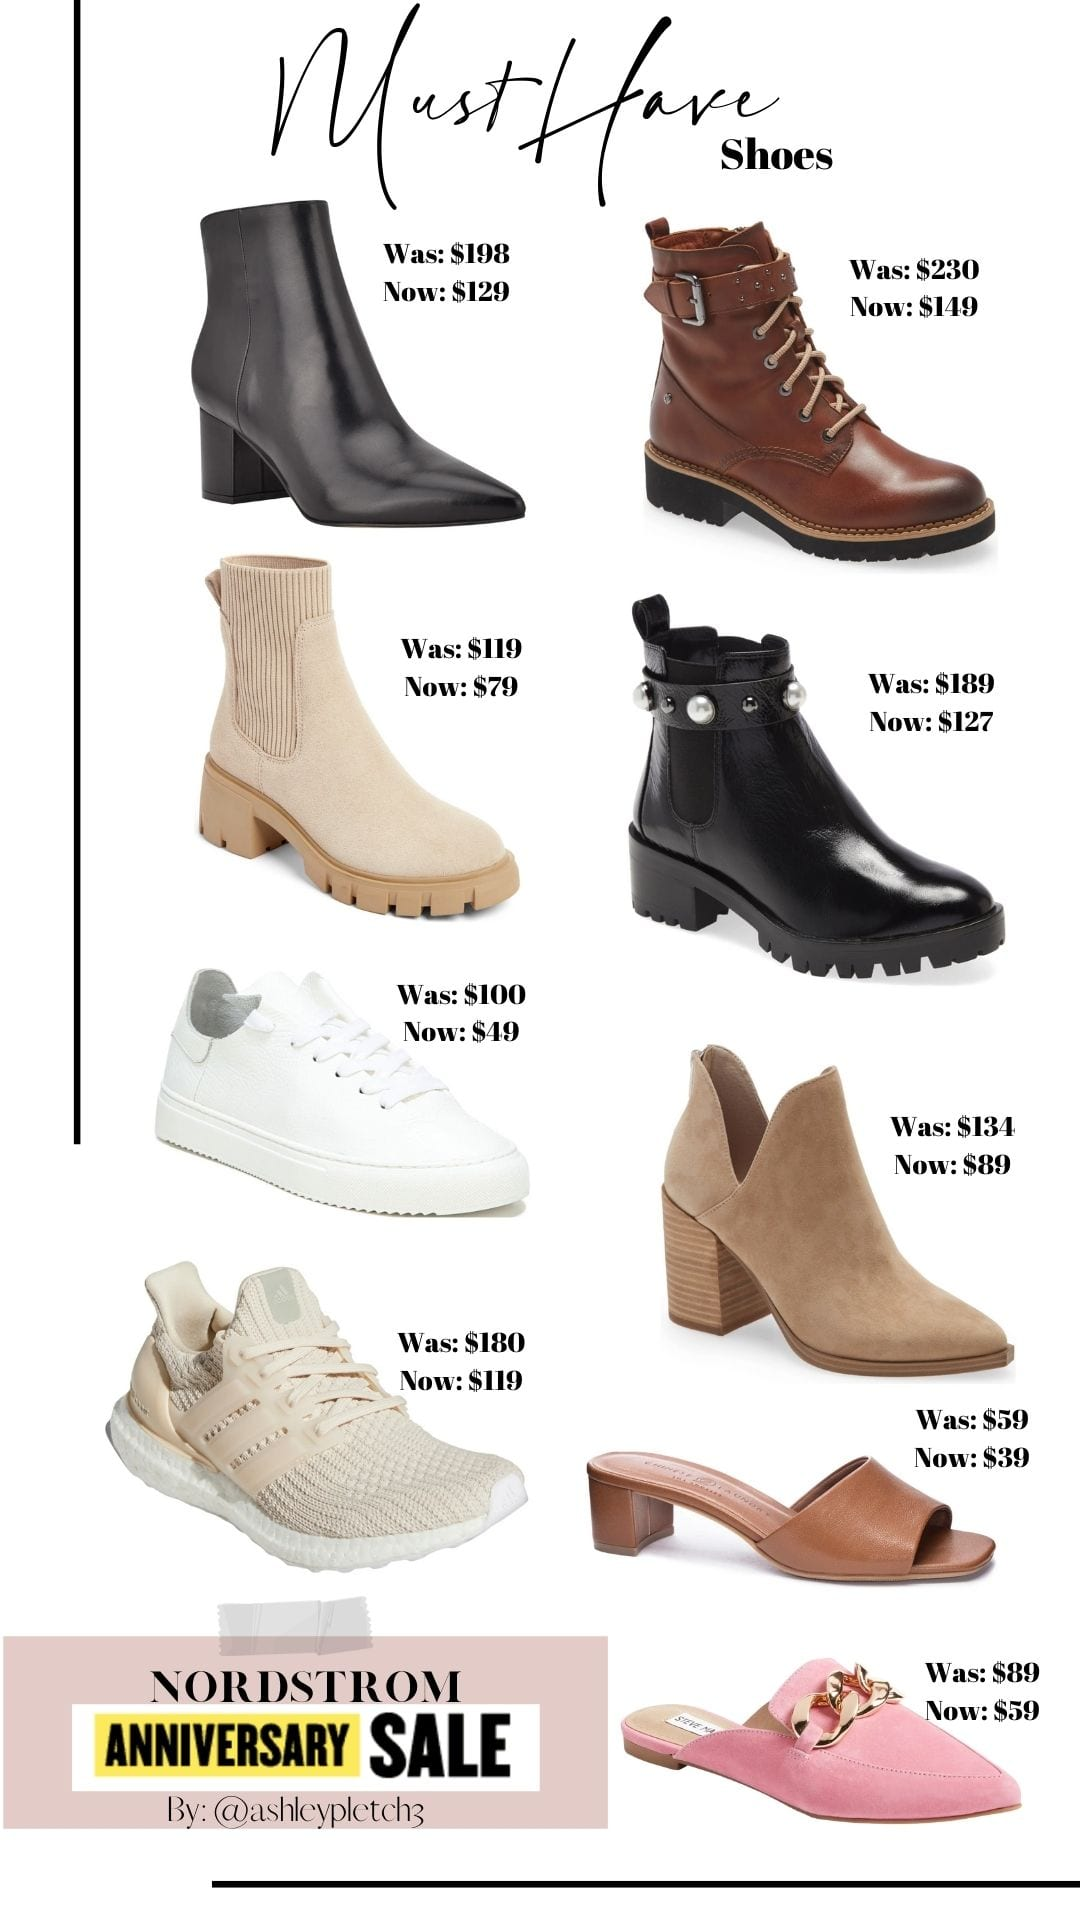 2021 Top 10 Nordstrom Anniversary Sale Items- Must have Fall Booties on Sale